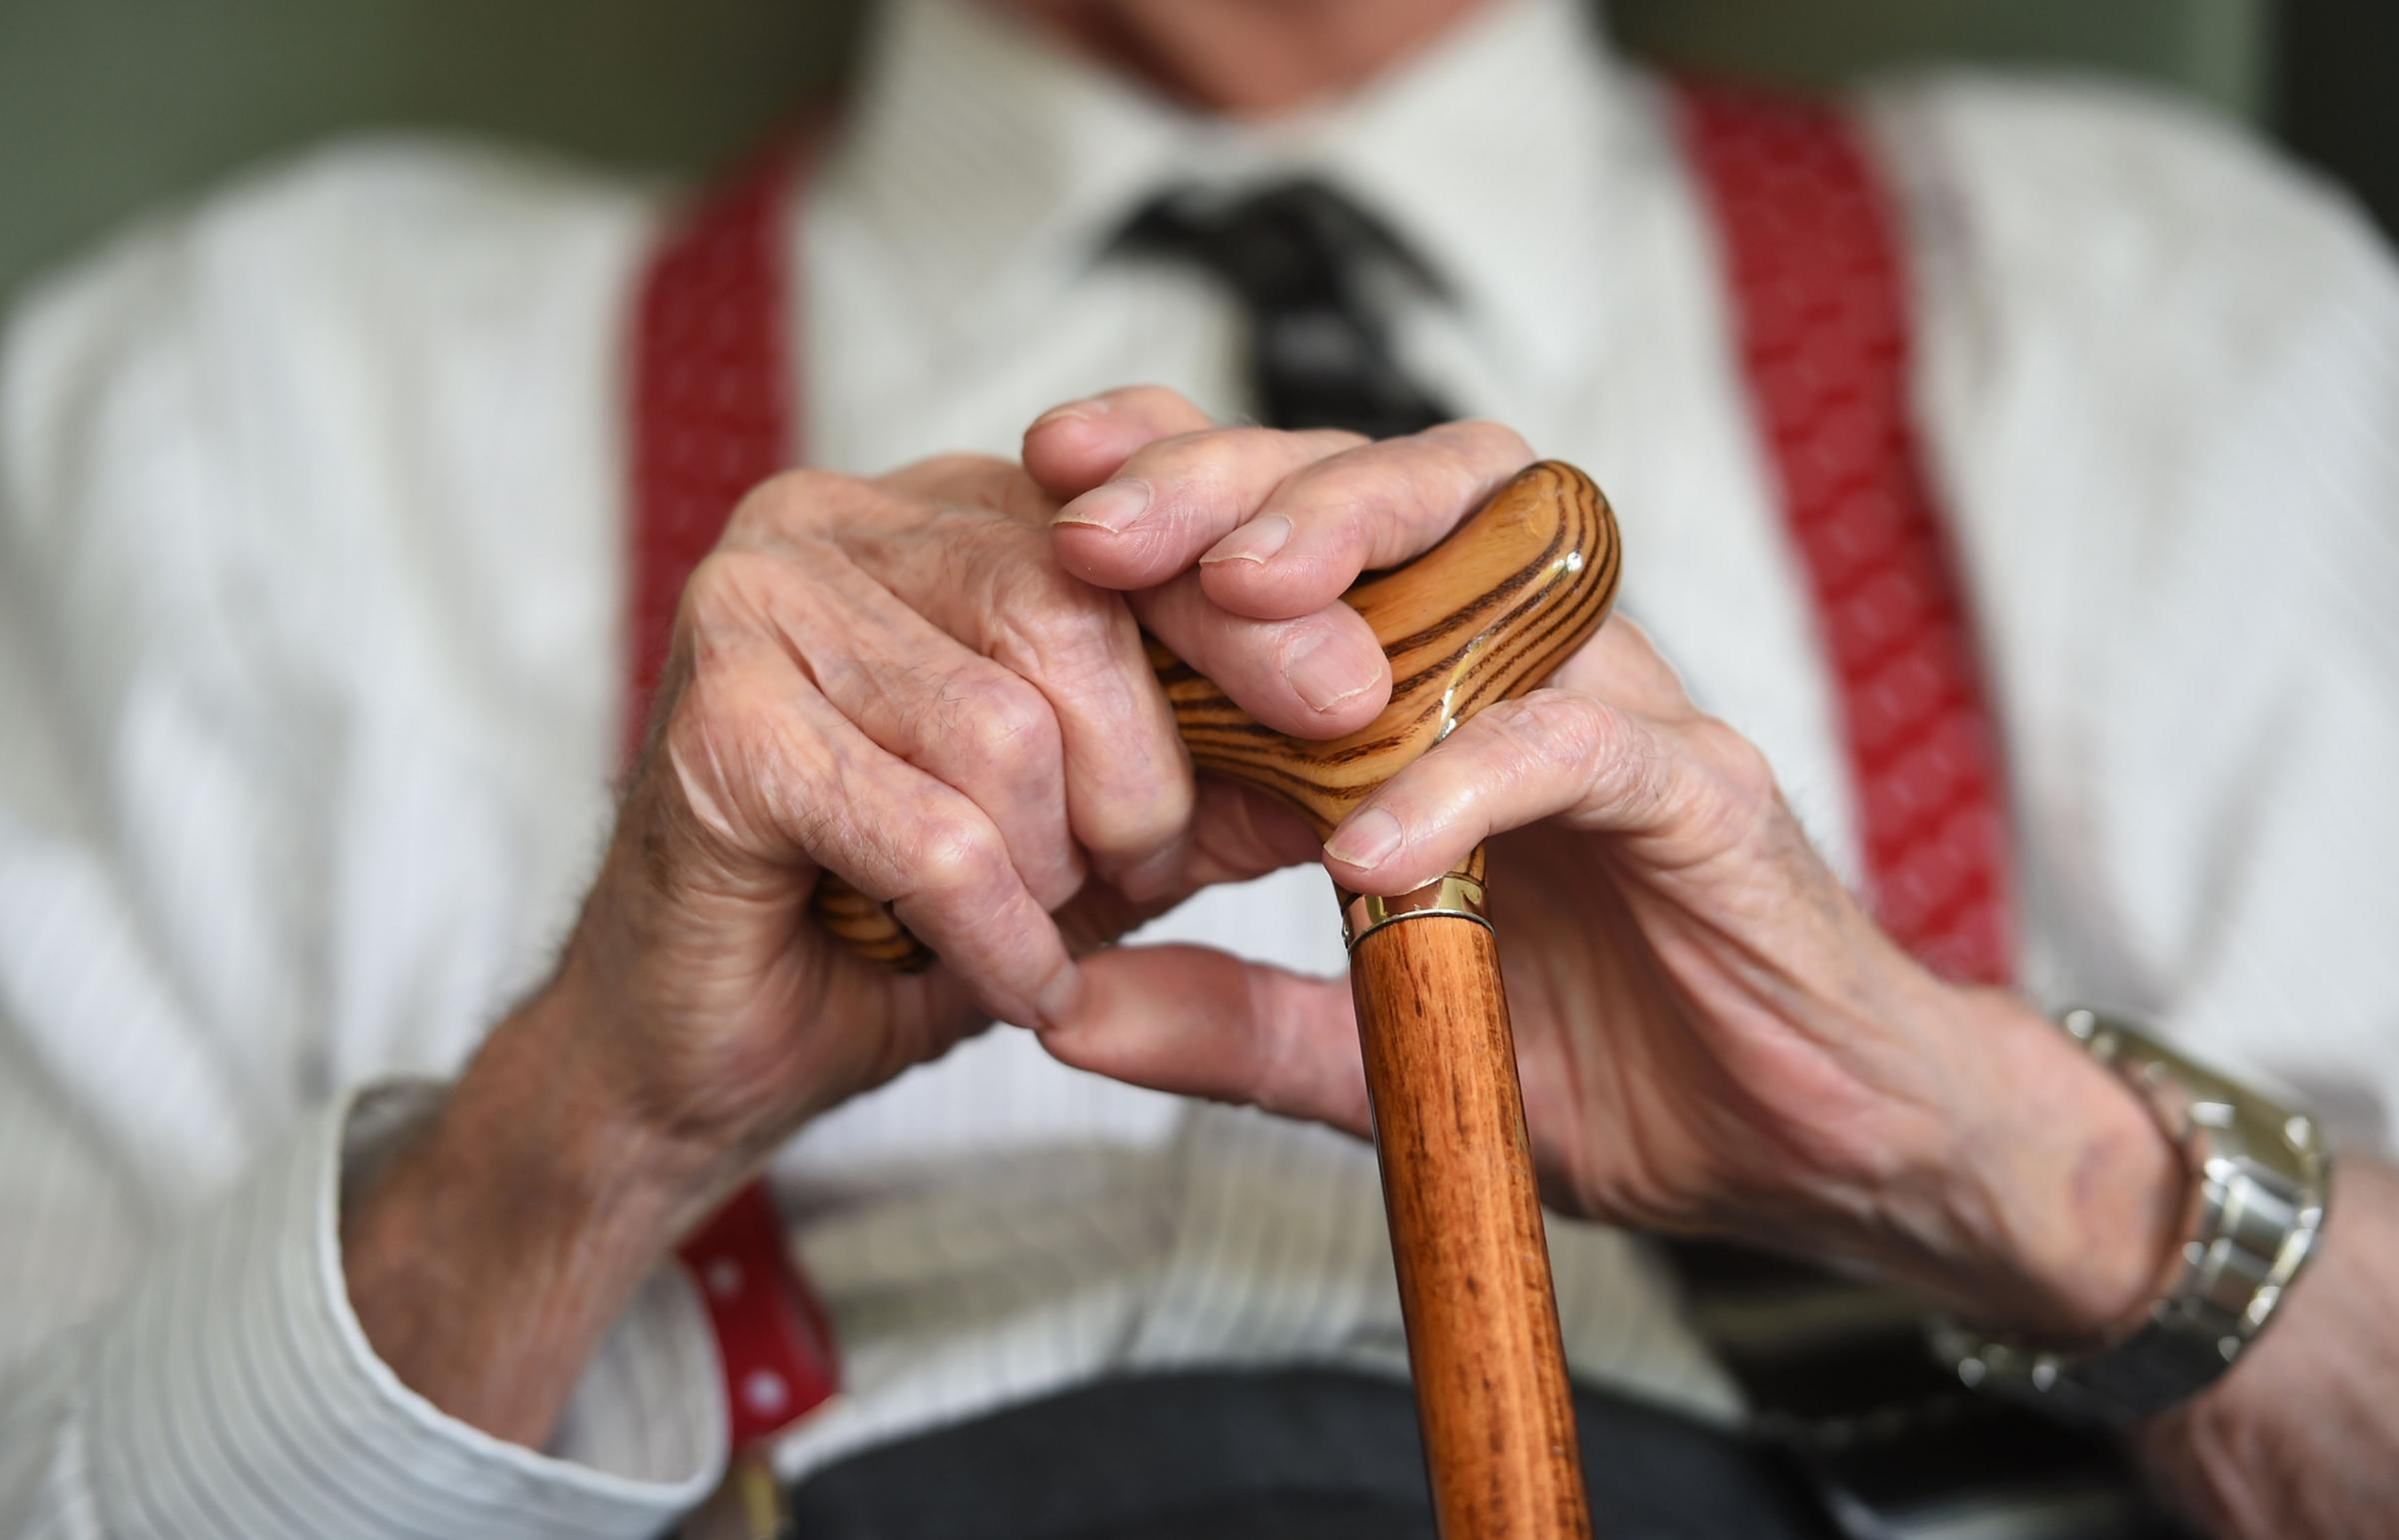 More than 40 per cent of care homes in need of improvement or inadequate